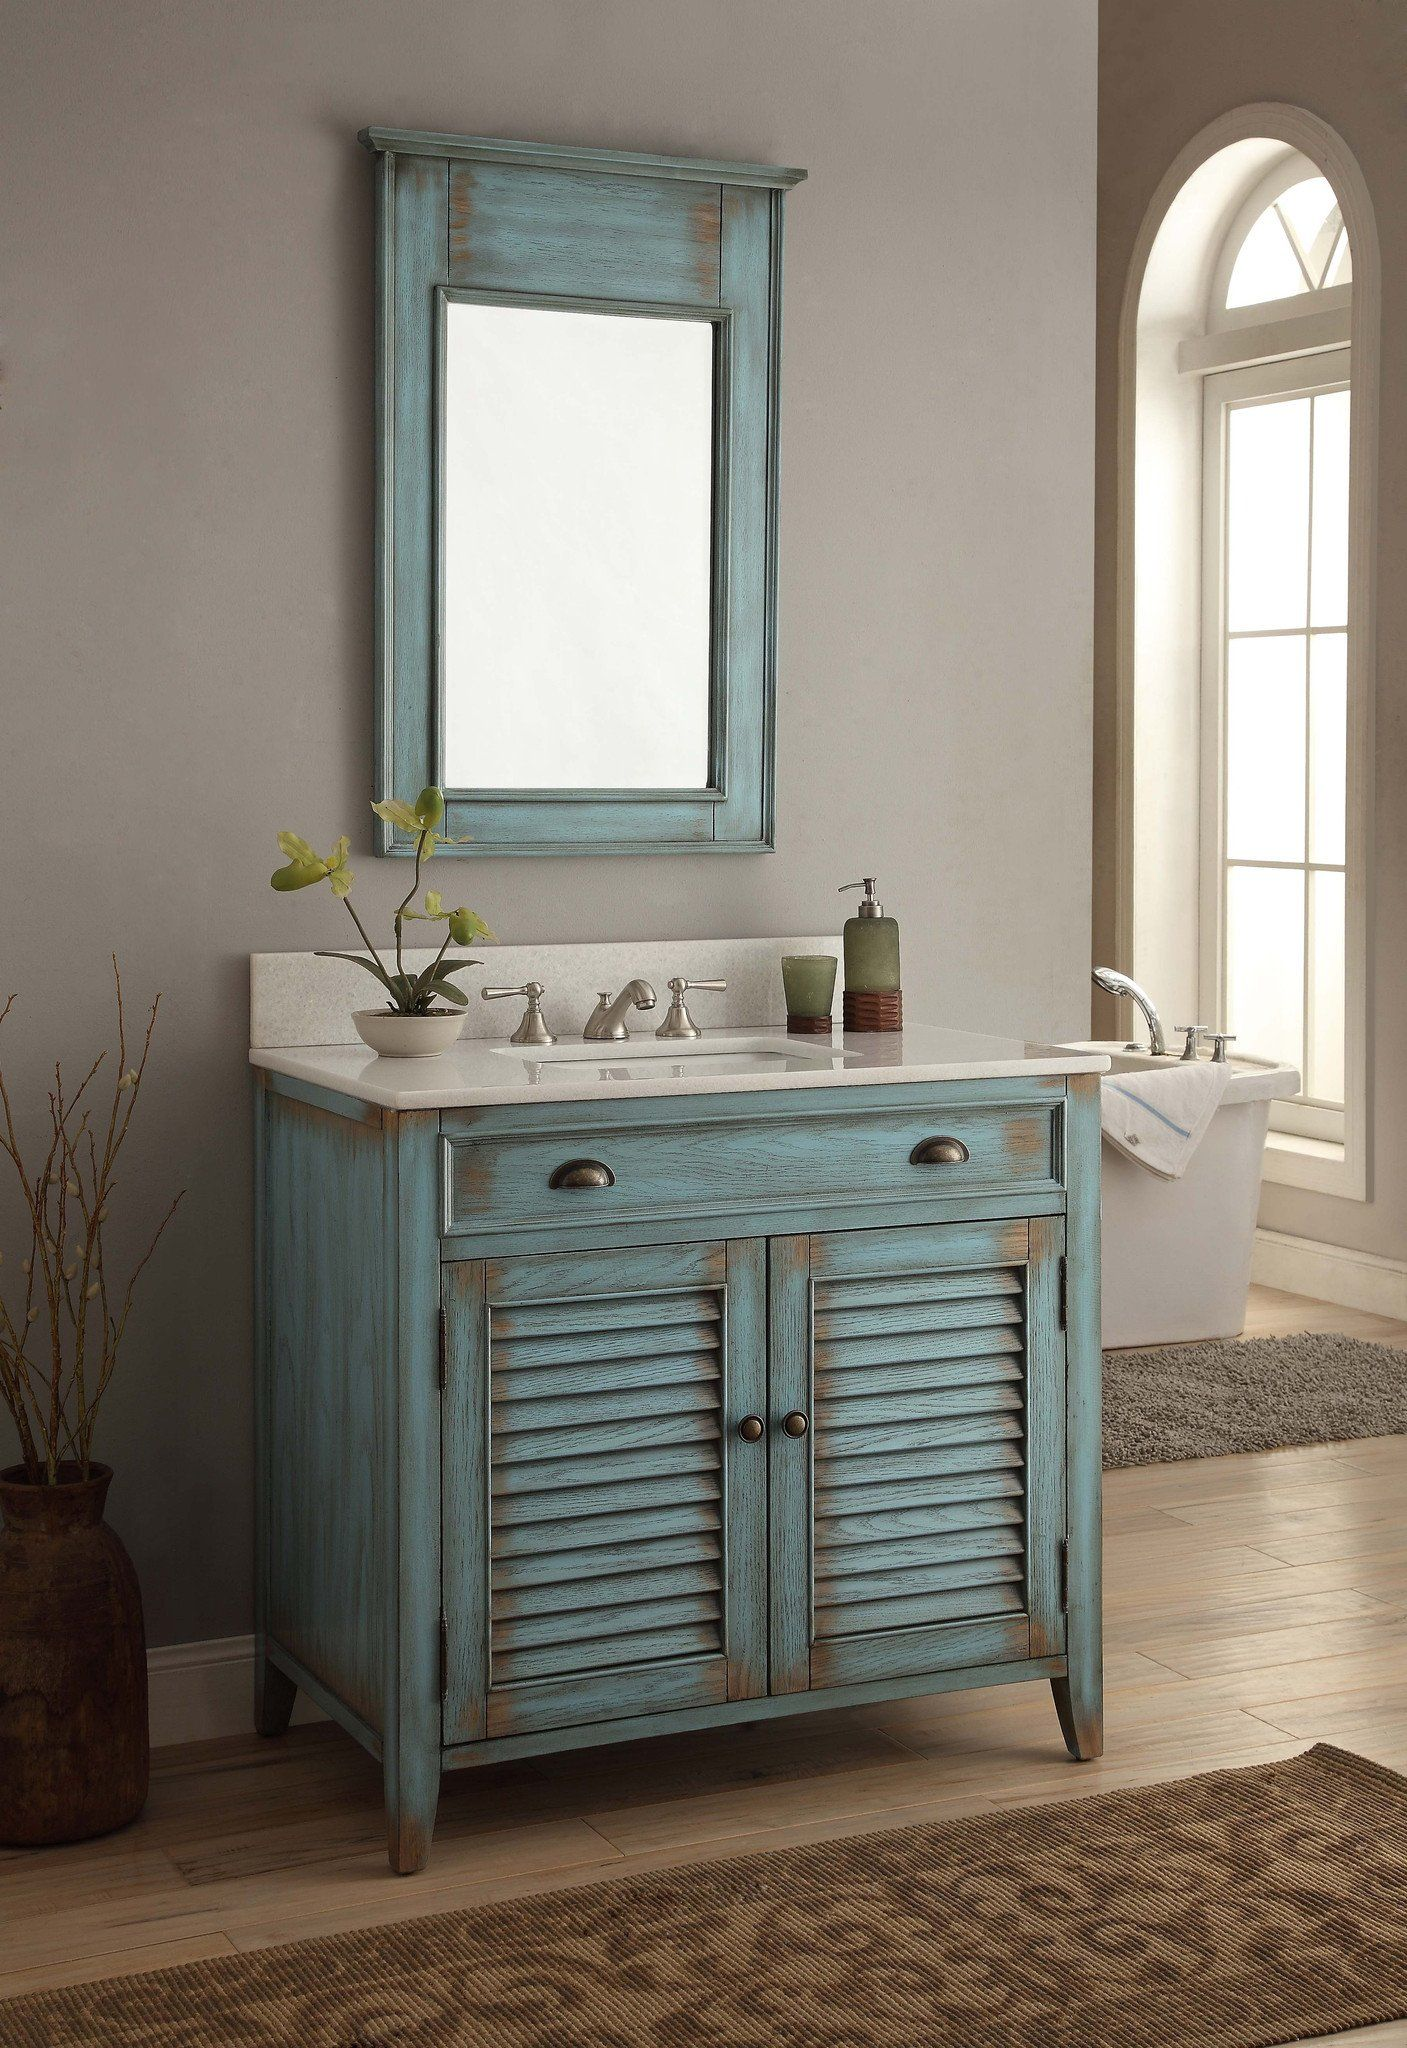 Rustic Bathoom Storage Unit and Mirror